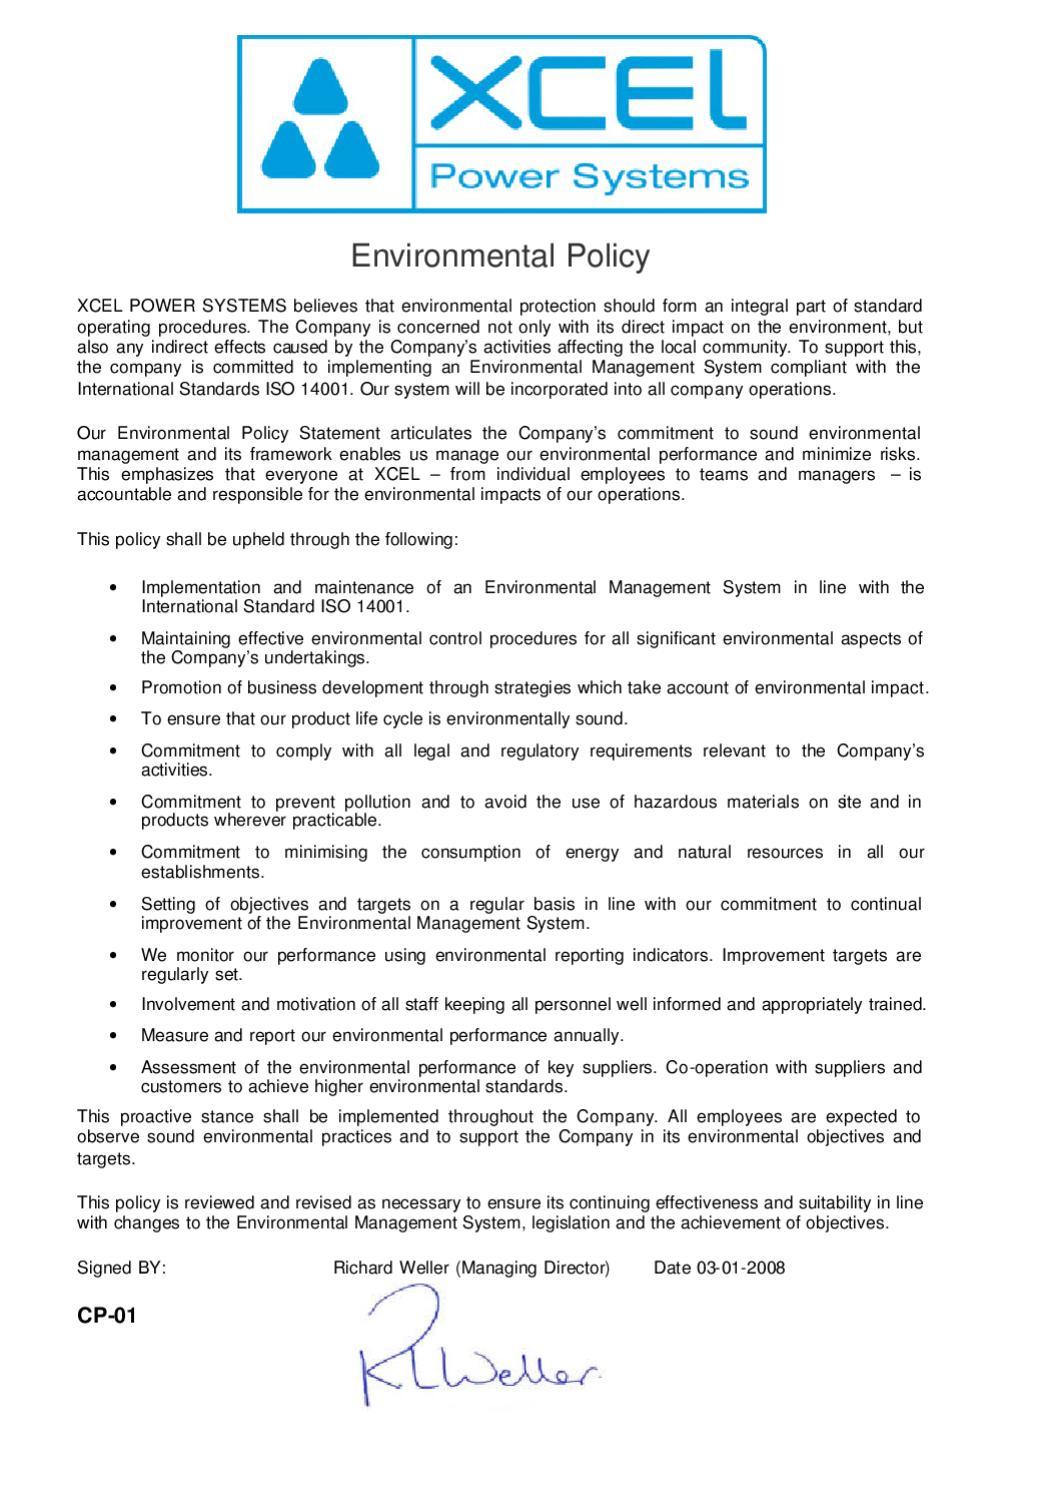 environmental policy reflection 1 Latest environmental news, opinion and analysis from the guardian.